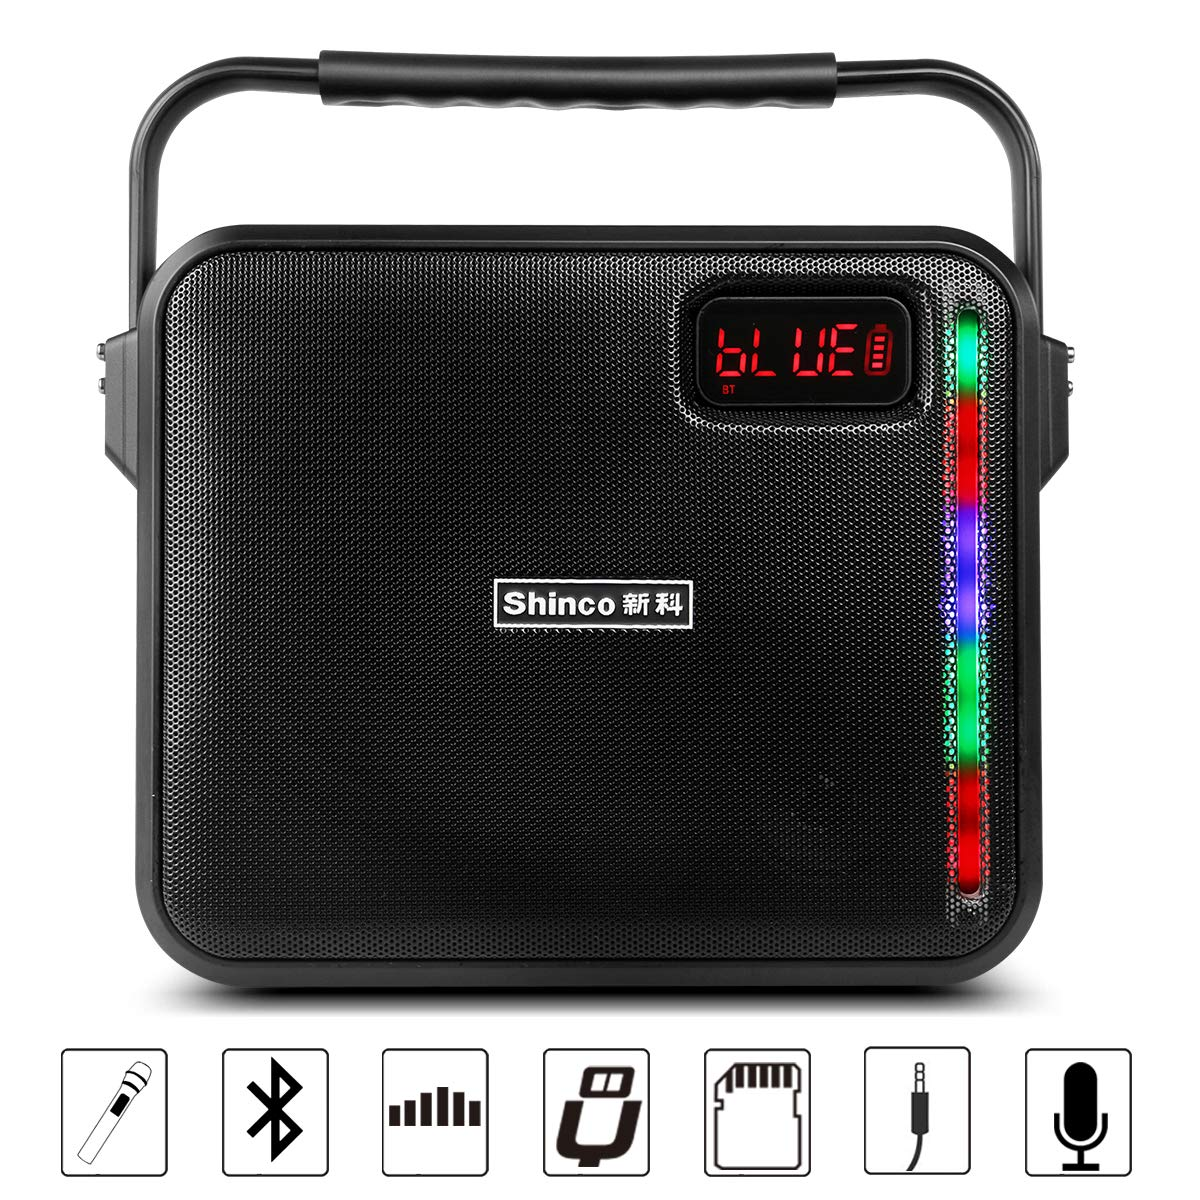 Shinco Portable PA Speaker Bluetooth Karaoke Machine Battery Powered PA System with 1 Wireless Microphone, AUX Cable USB Charging for Smartphone and Tablet